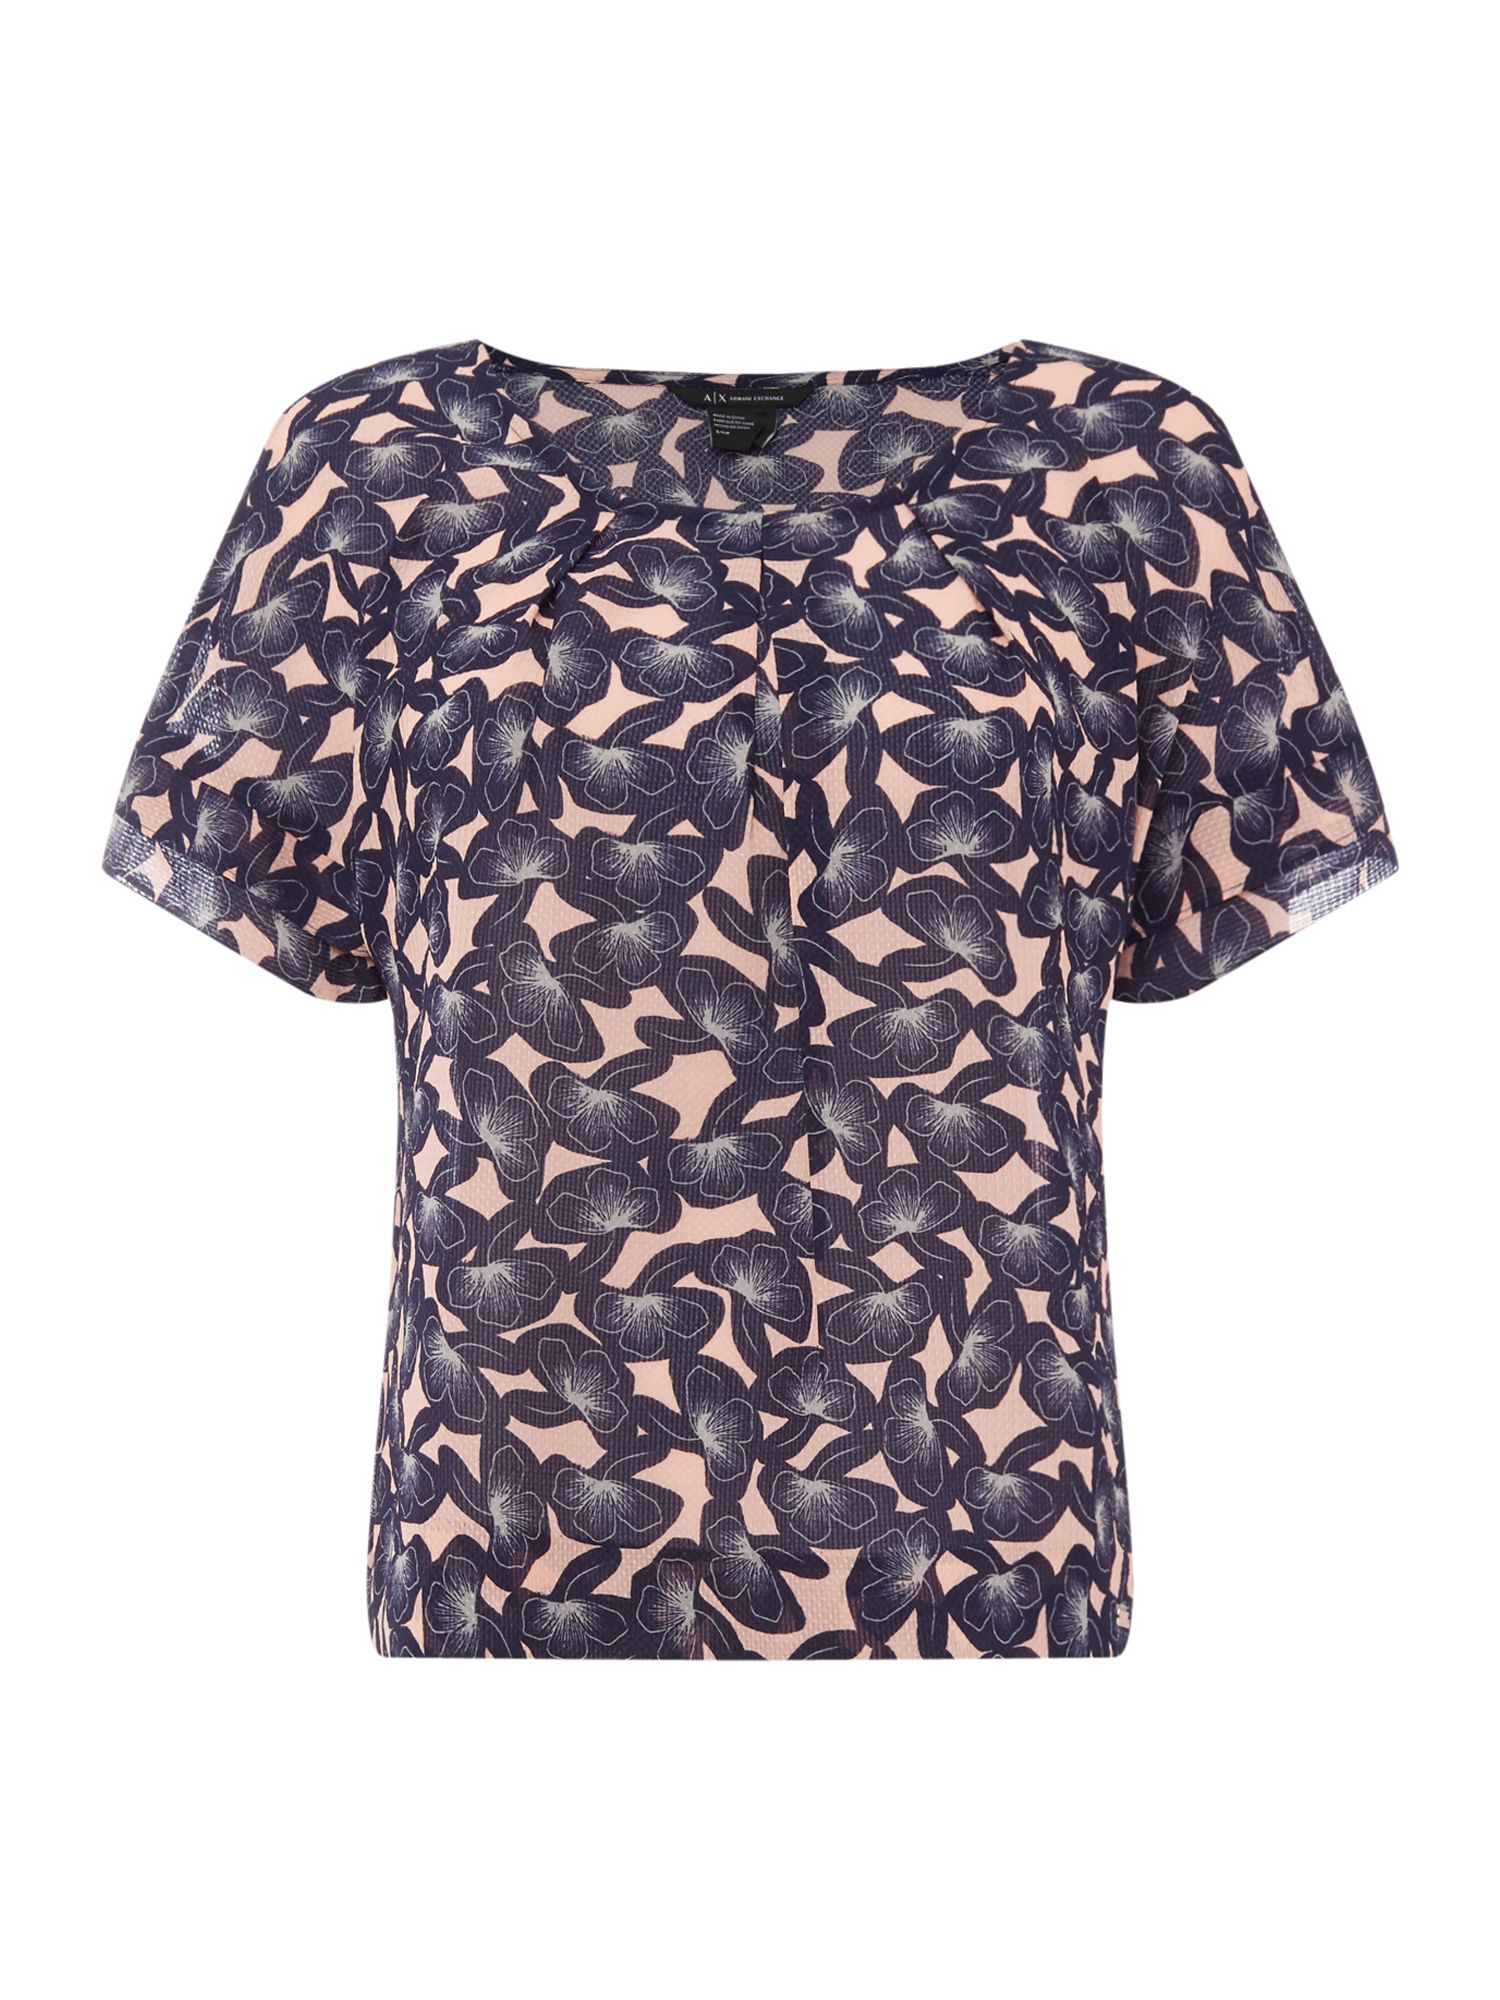 Armani Exchange Short Sleeve Printed Blouse in Pink Mushroom, Pink